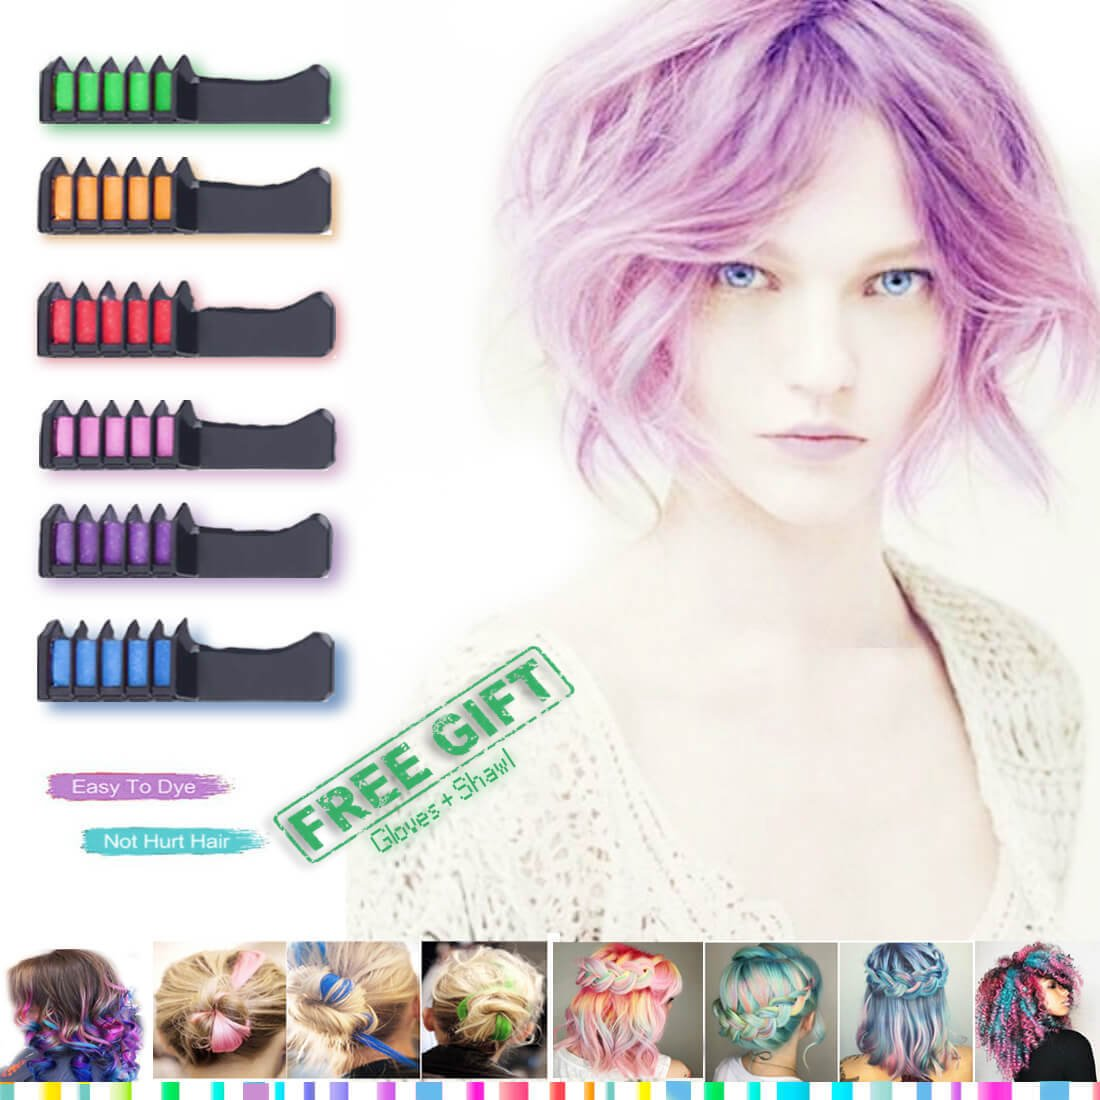 Best Hair Coloring Products: Hair Chalk - Temporary Bright Hair ...